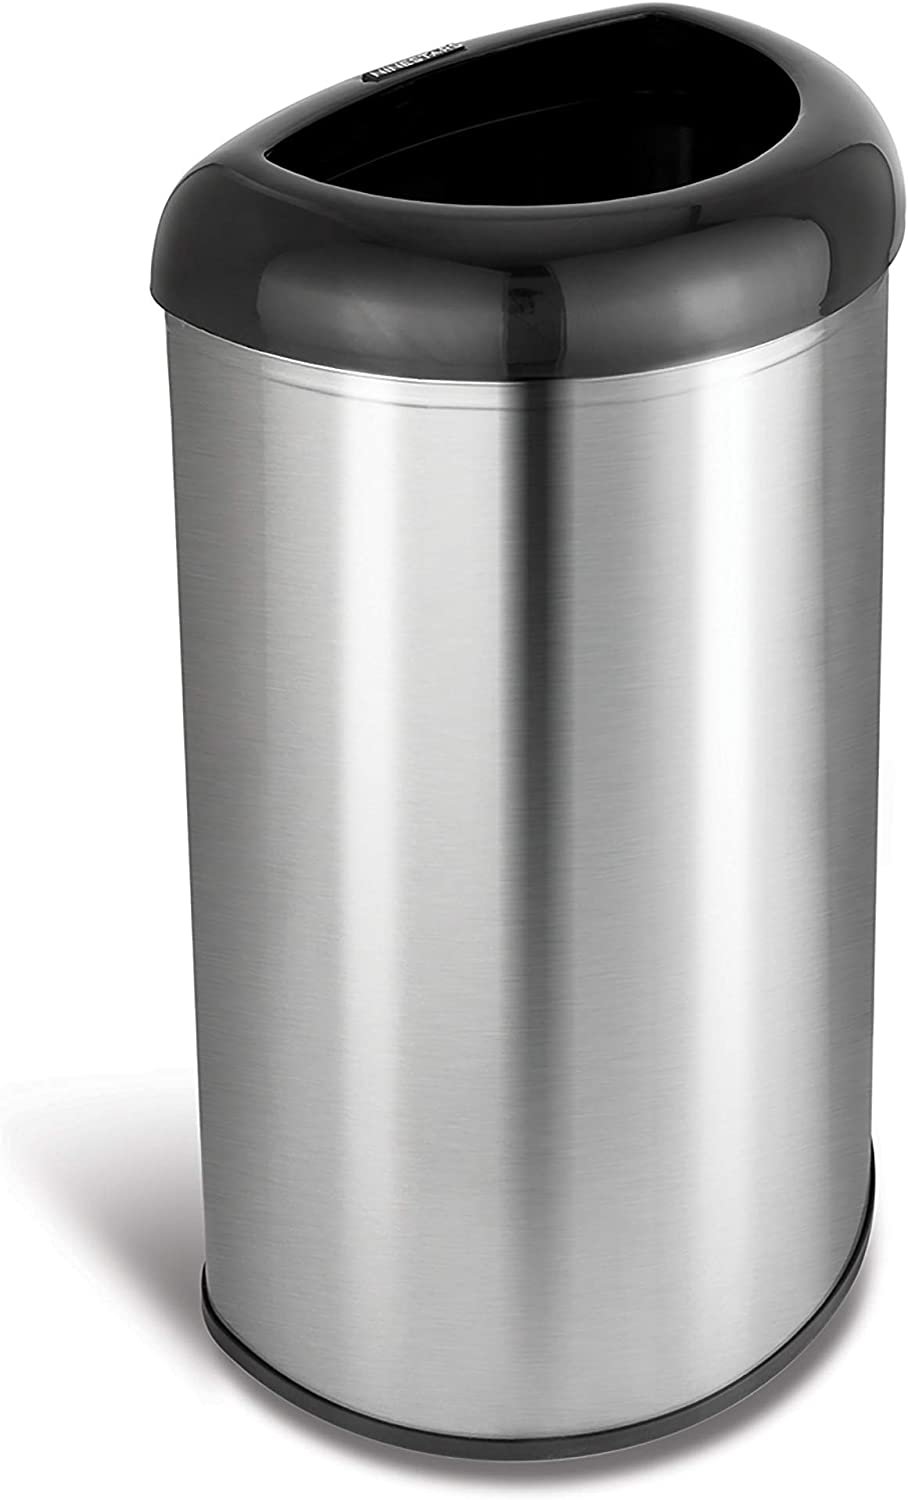 NINESTARS OTT-50-19BK Open Top Office Bathroom Trash Can, 13 Gal 50L, Stainless Steel Base (D Shape, Black Lid)